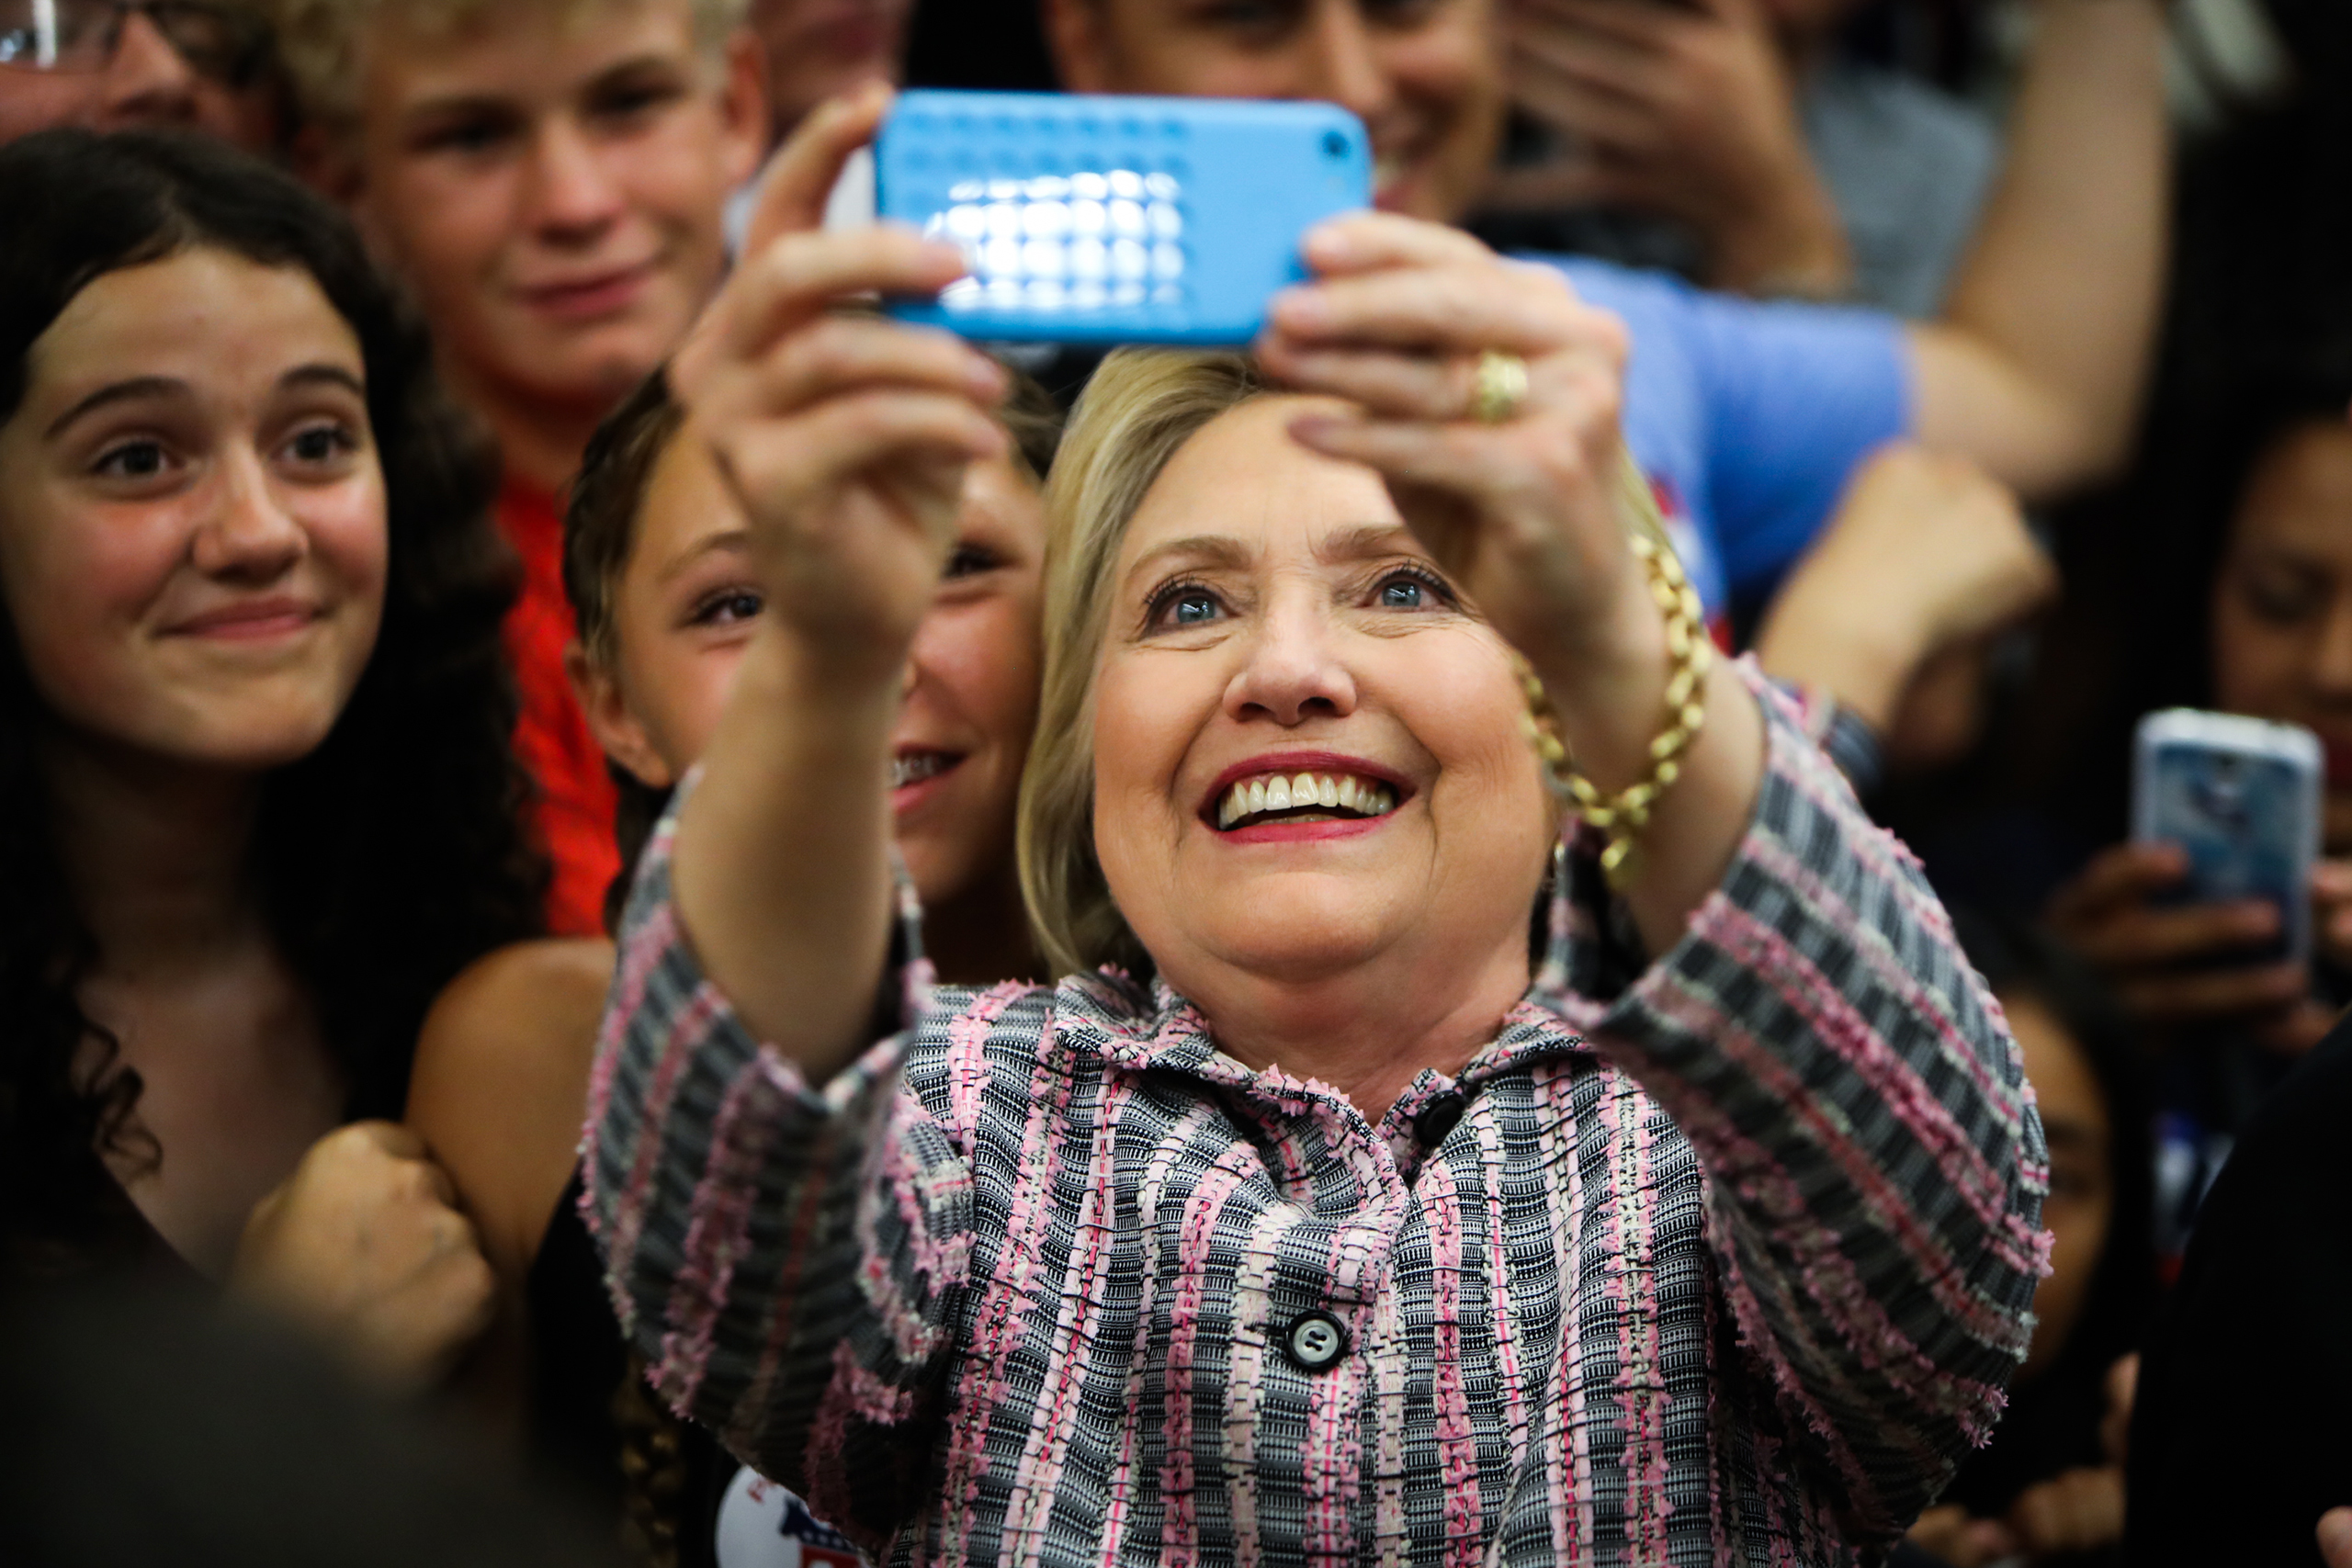 Hillary Clinton takes photographs with supporters after a campaign rally at Sacramento City College in Calif. on June 5, 2016.